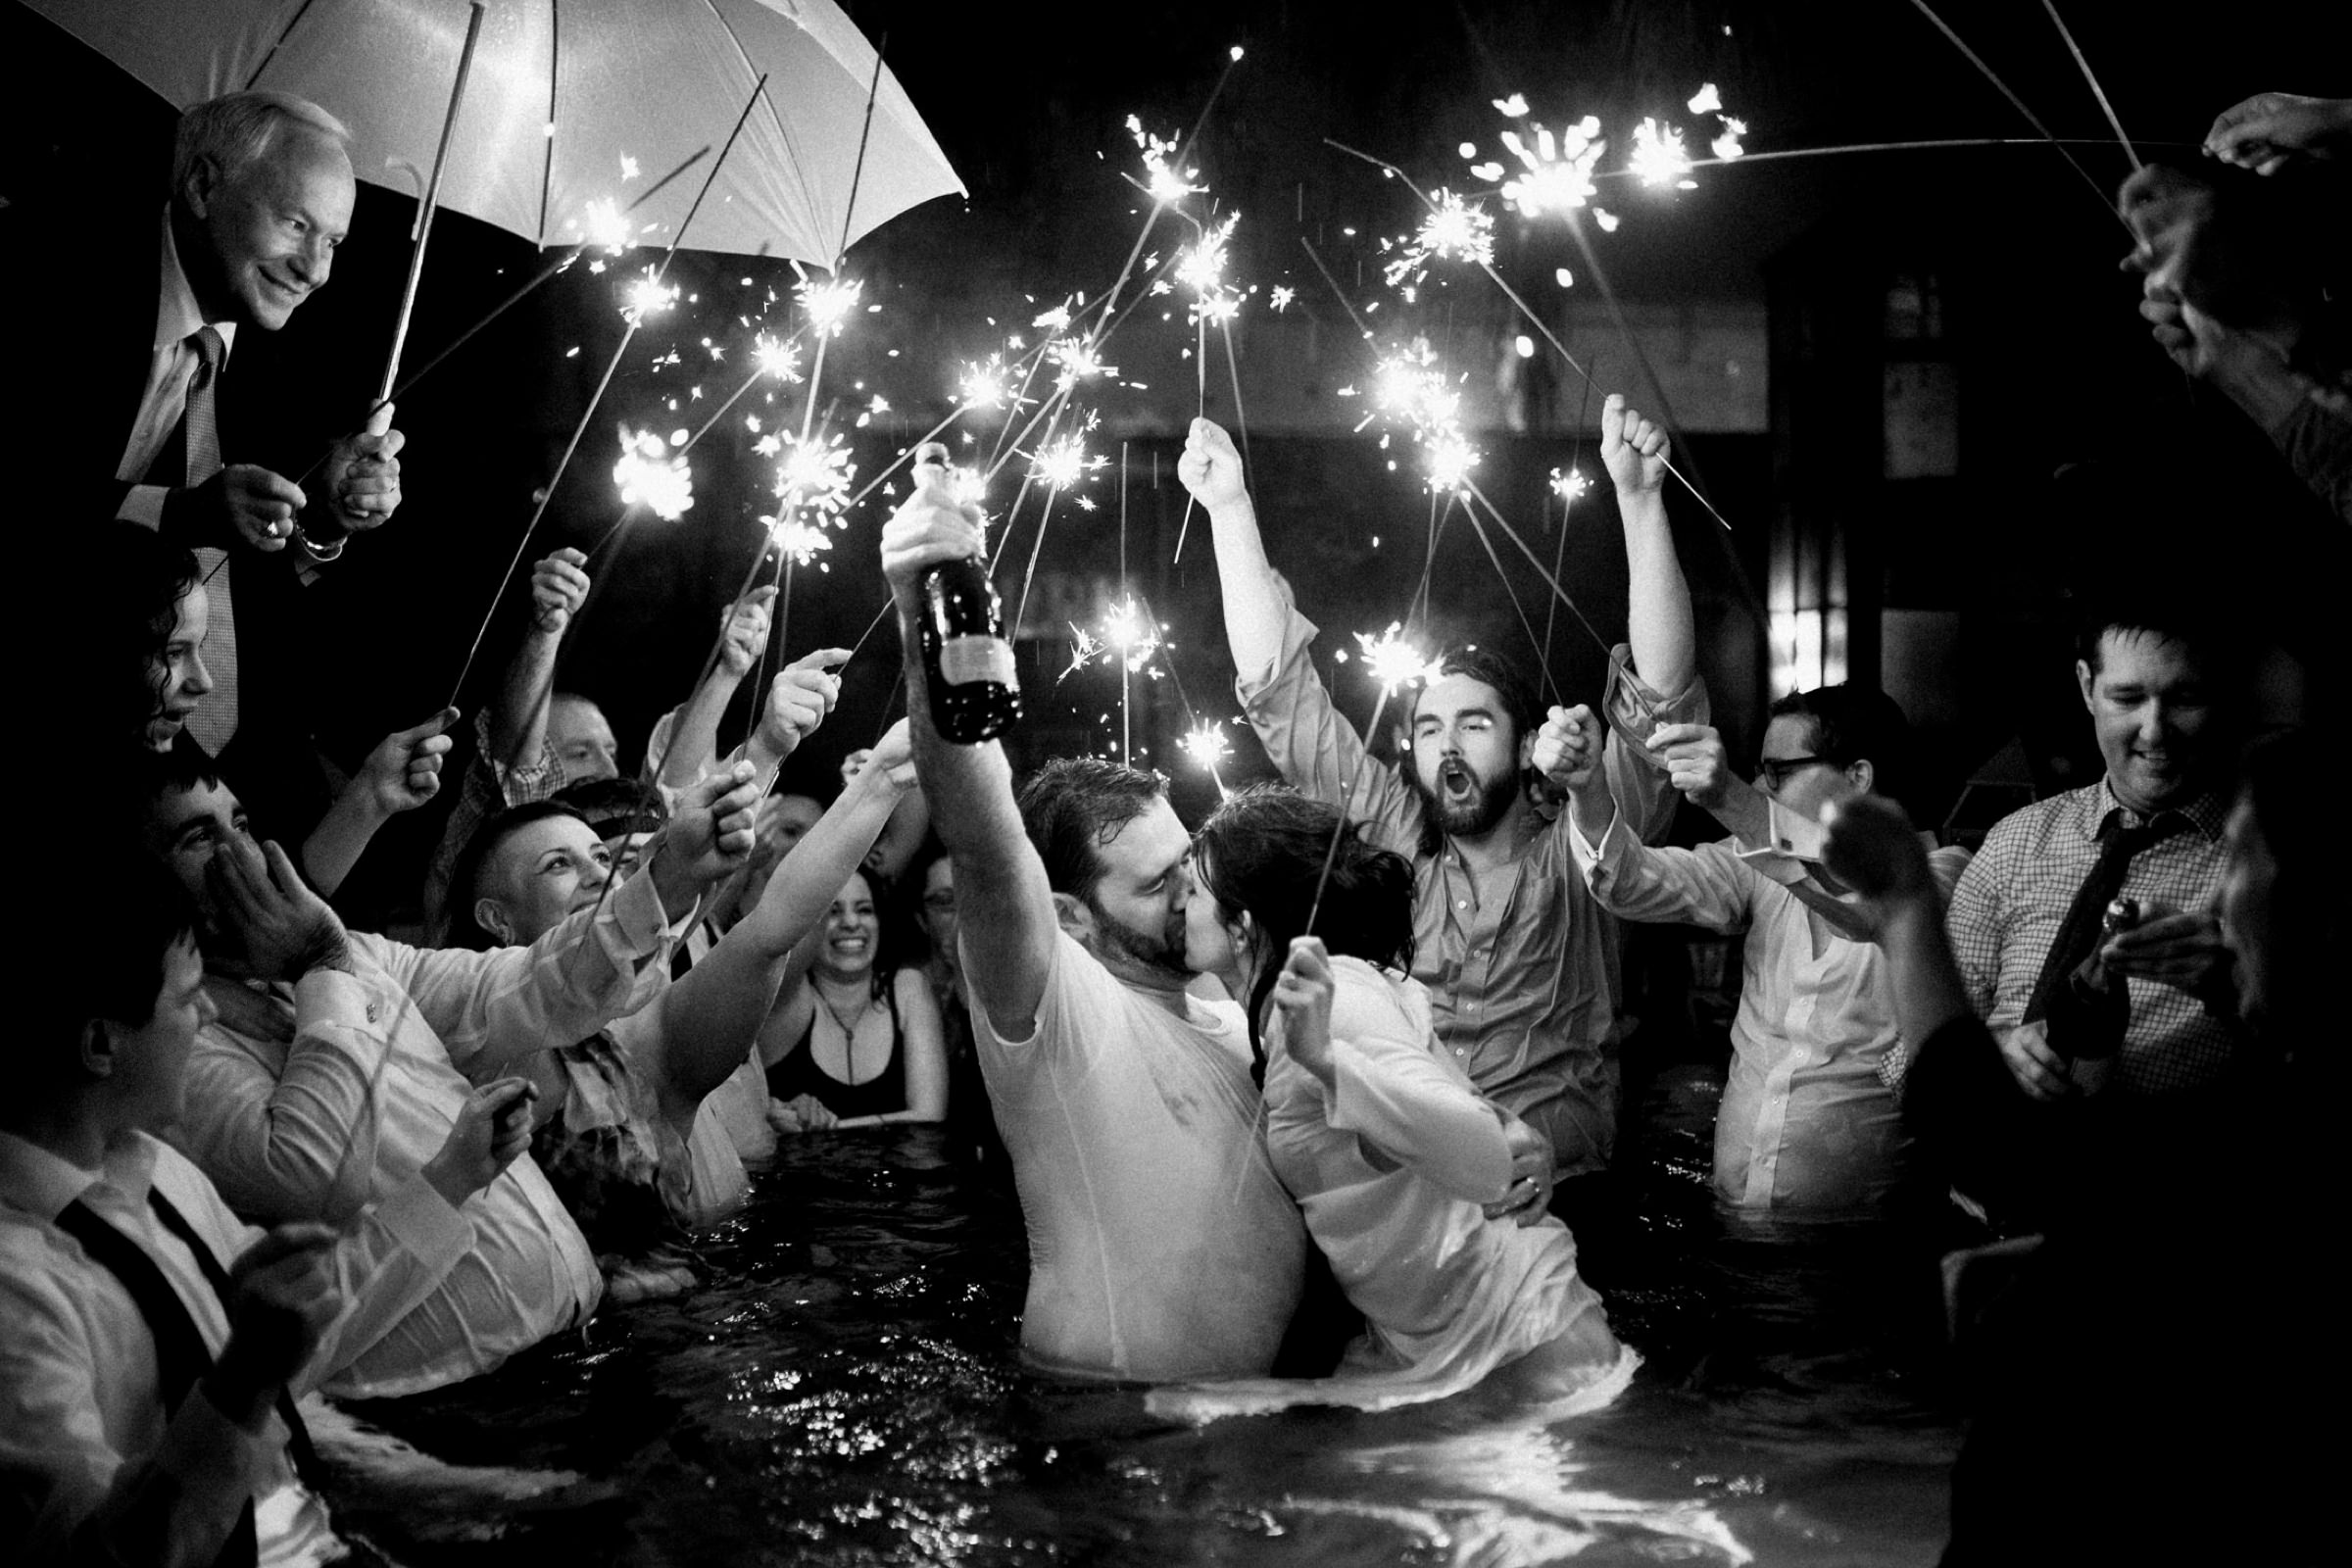 Photo of couple in just married couple in hottub with sparklers by Dark Roux, Austin, Texas